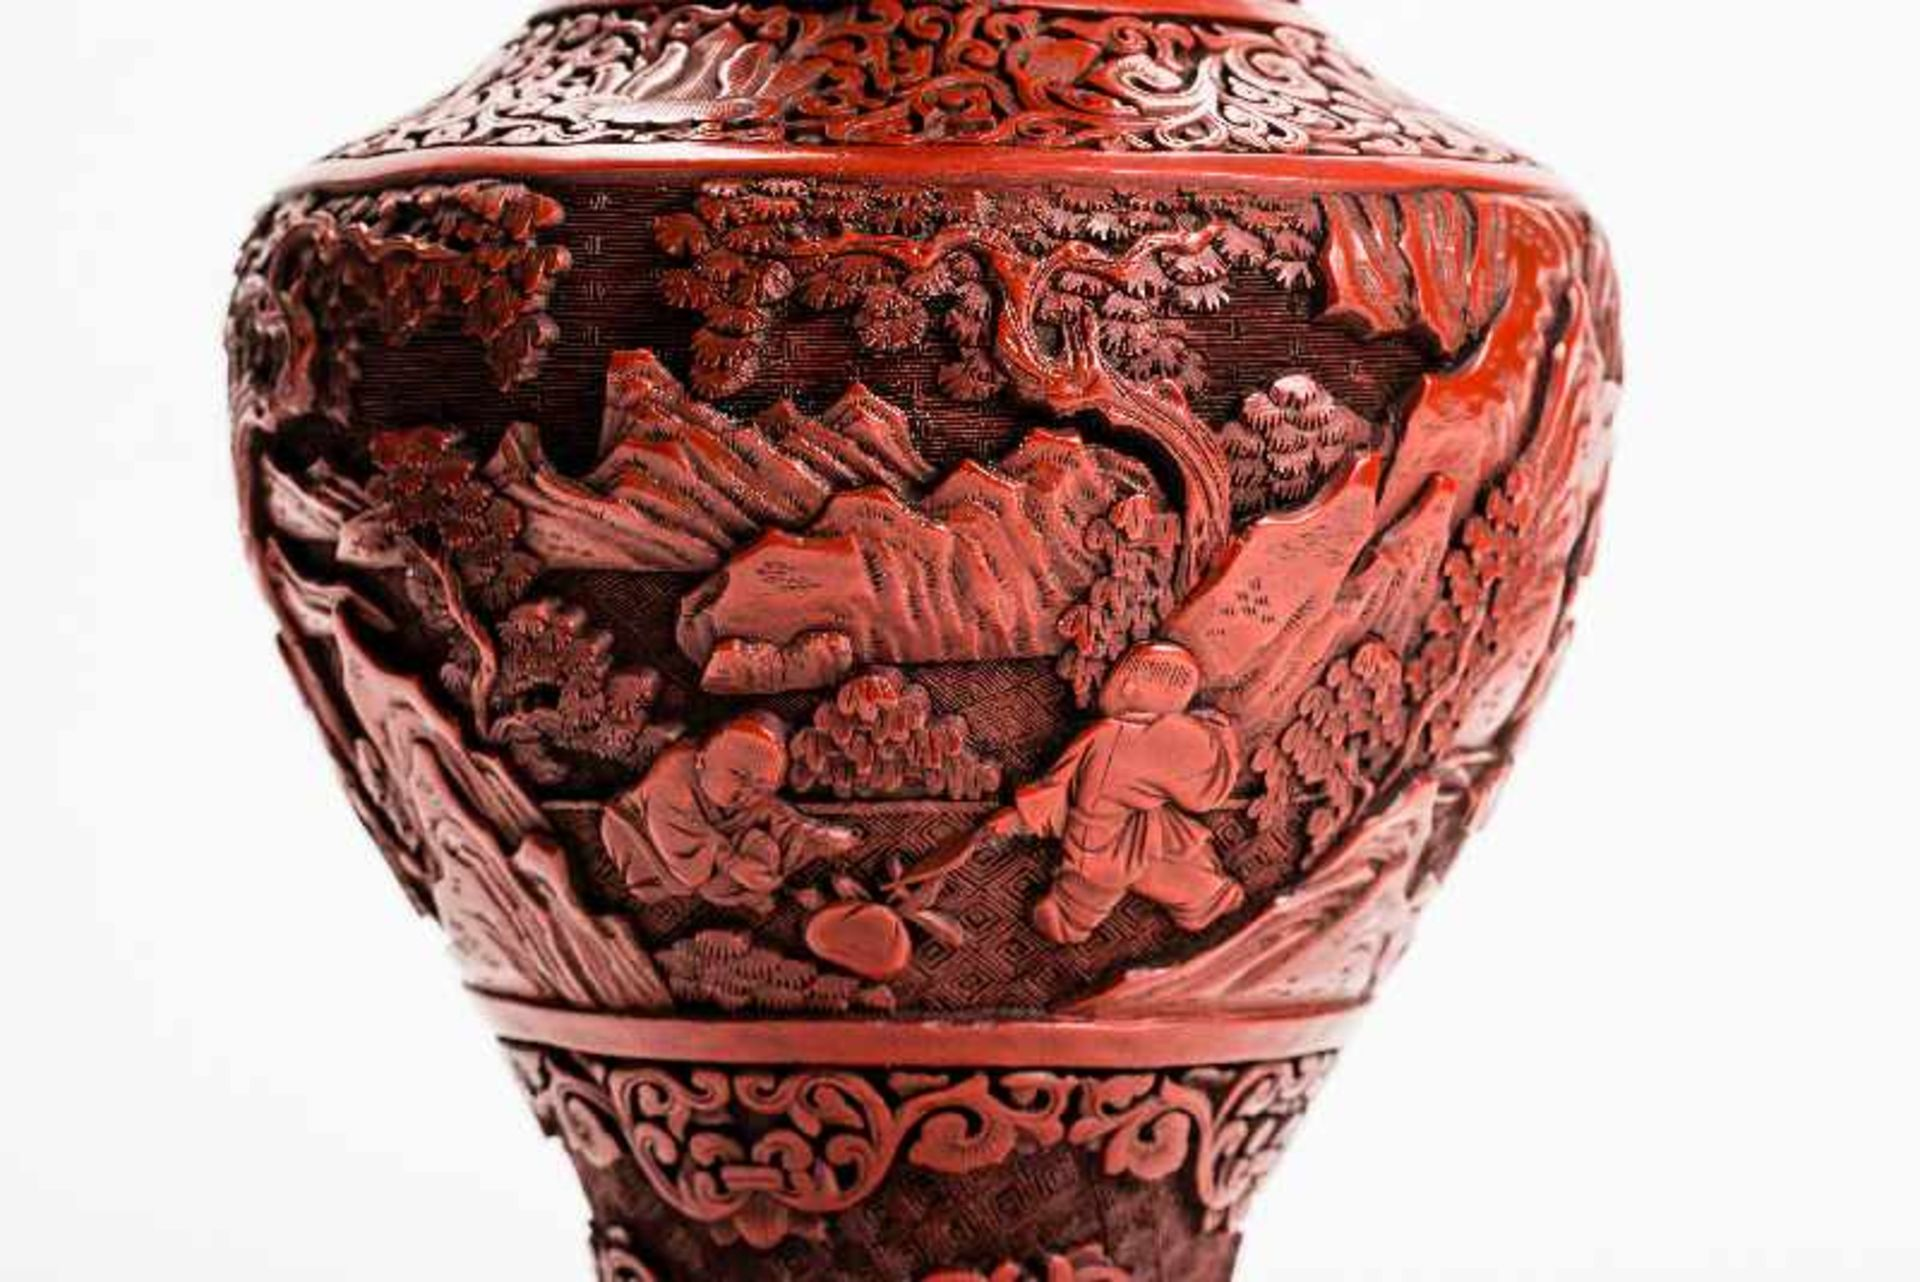 VASE MIT GESCHNITZTEM ROTLACK Rotlack, Metall. China, Qing-Dynastie (1644 – 1911) Sehr dicht mit - Image 6 of 8